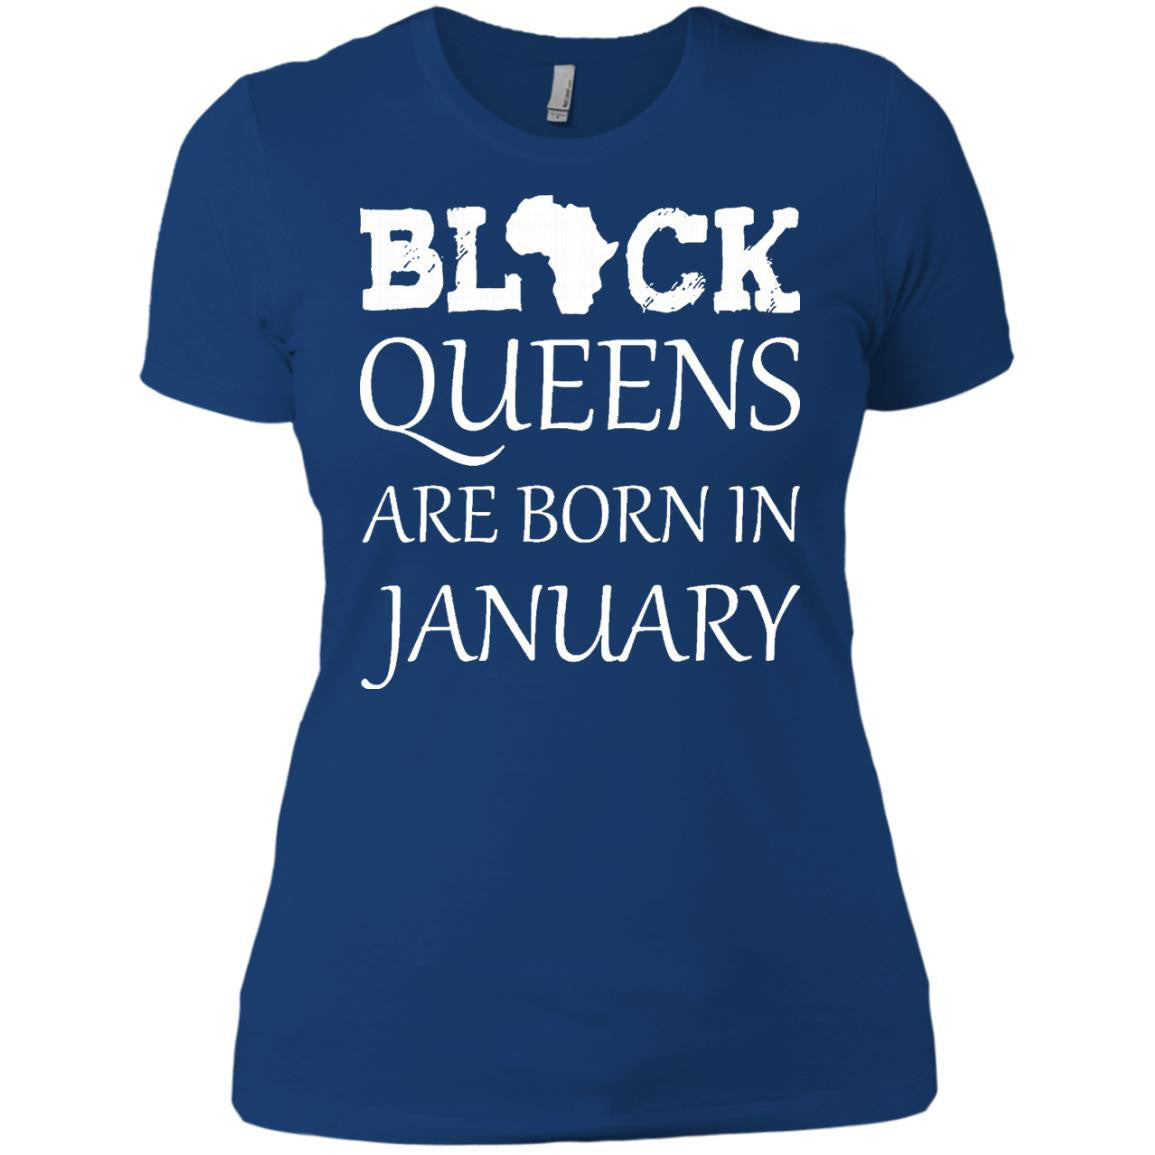 Black queen t shirt - Women Black Queen T Shirts Black Queens Are Born In January Hoodies Sweatshirts